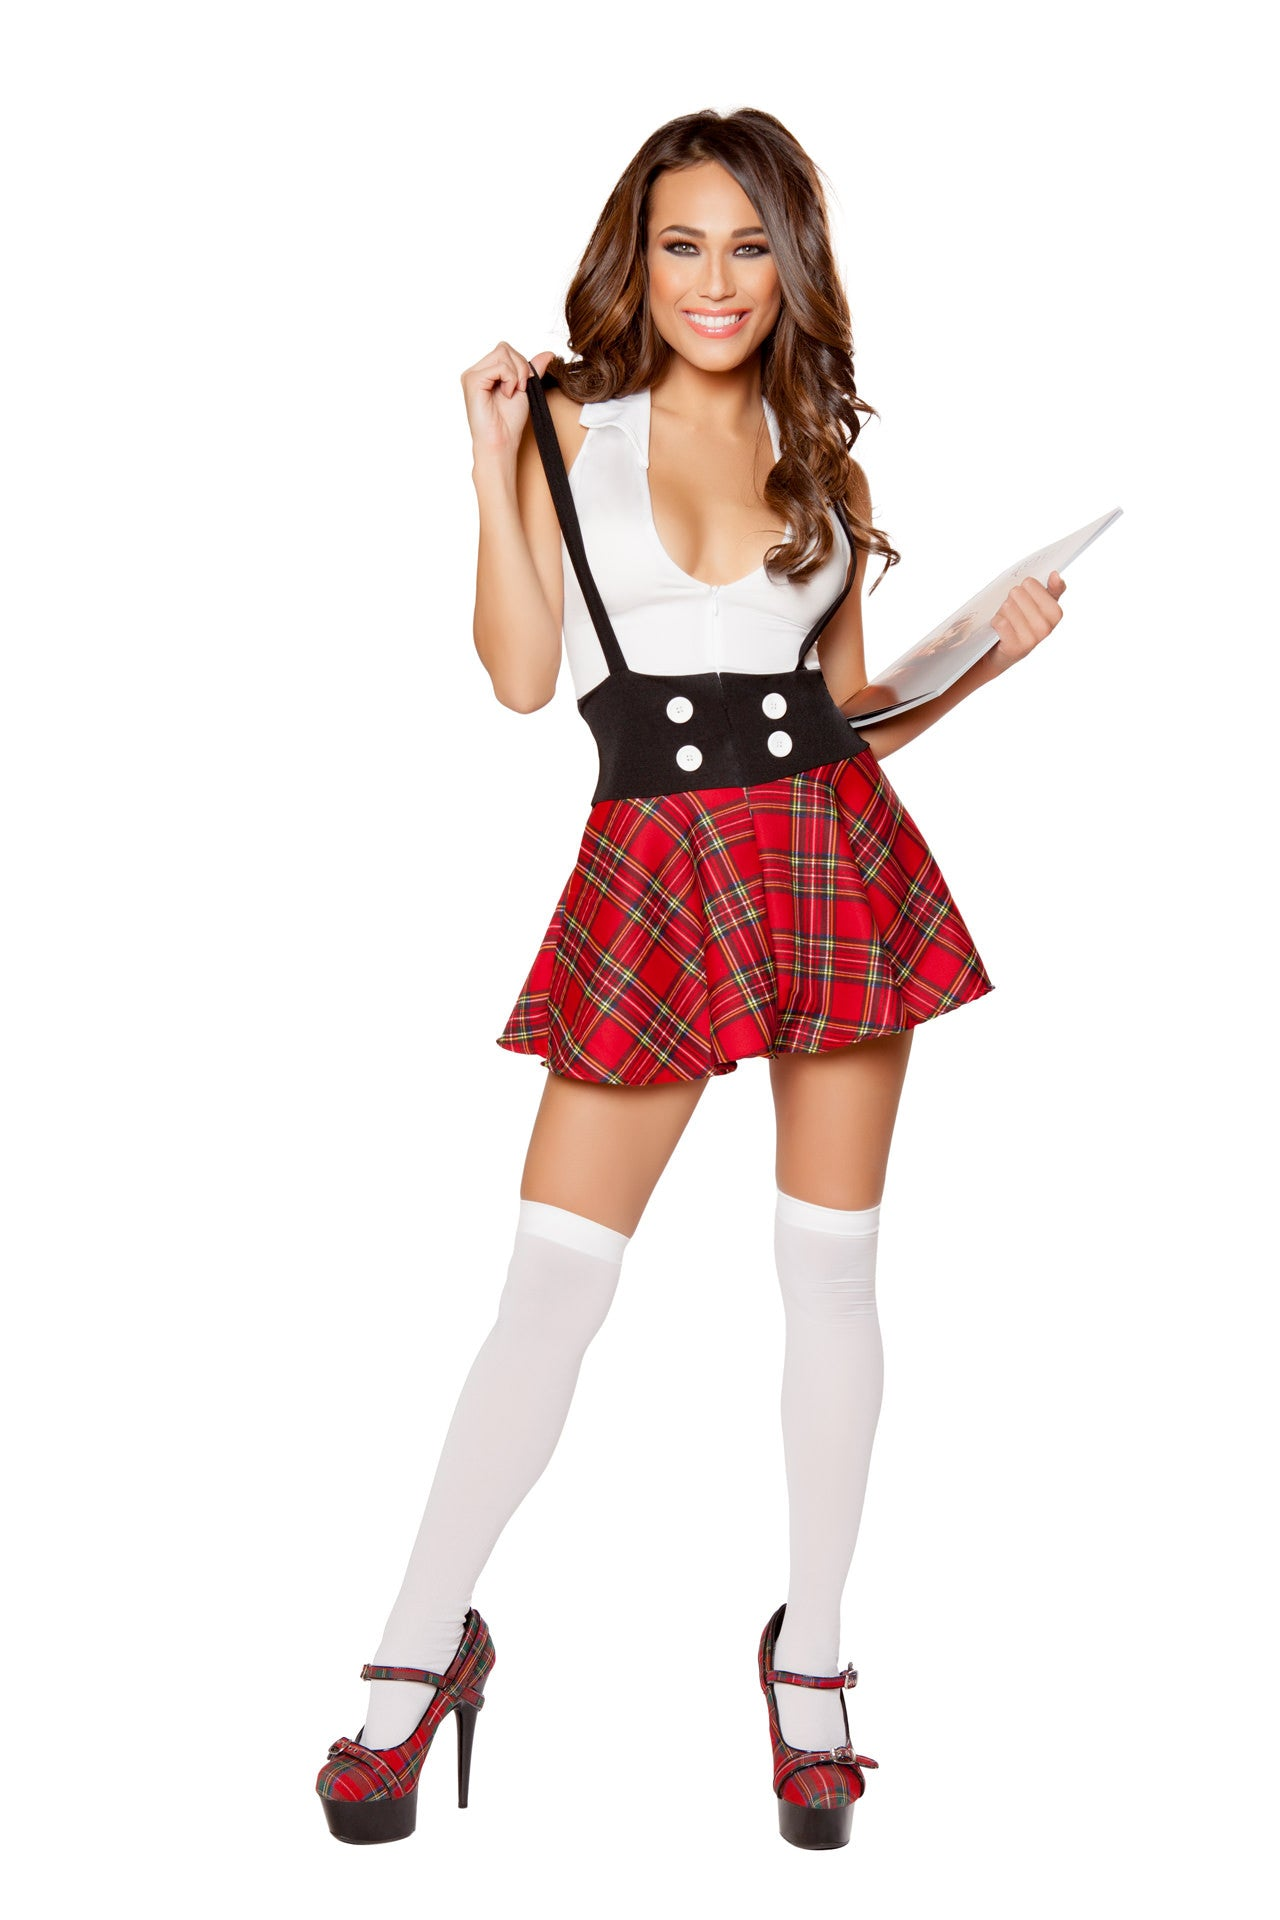 10097 - 1pc Teasing School Girl ${description} | Roma Costume and Roma Confidential wholesale manufacturer of Women Apparel bulk world wide wholesale and world wide drop ship services for Adult Halloween Costumes, Sexy and Elegant Lingerie, Rave Clothing, Club wear, and Christmas Costumes. Costumes,Blowout Sale, Roma Costume, Inc., Roma Costume, Roma Confidential, Wholesale clothing, drop ship, drop ship service, Wholesale Lingerie, Wholesale Adult Halloween Costumes, Rave Clothing, EDM Clothing, Festival Wear, Christmas Costumes, Clubwear, Club wear.